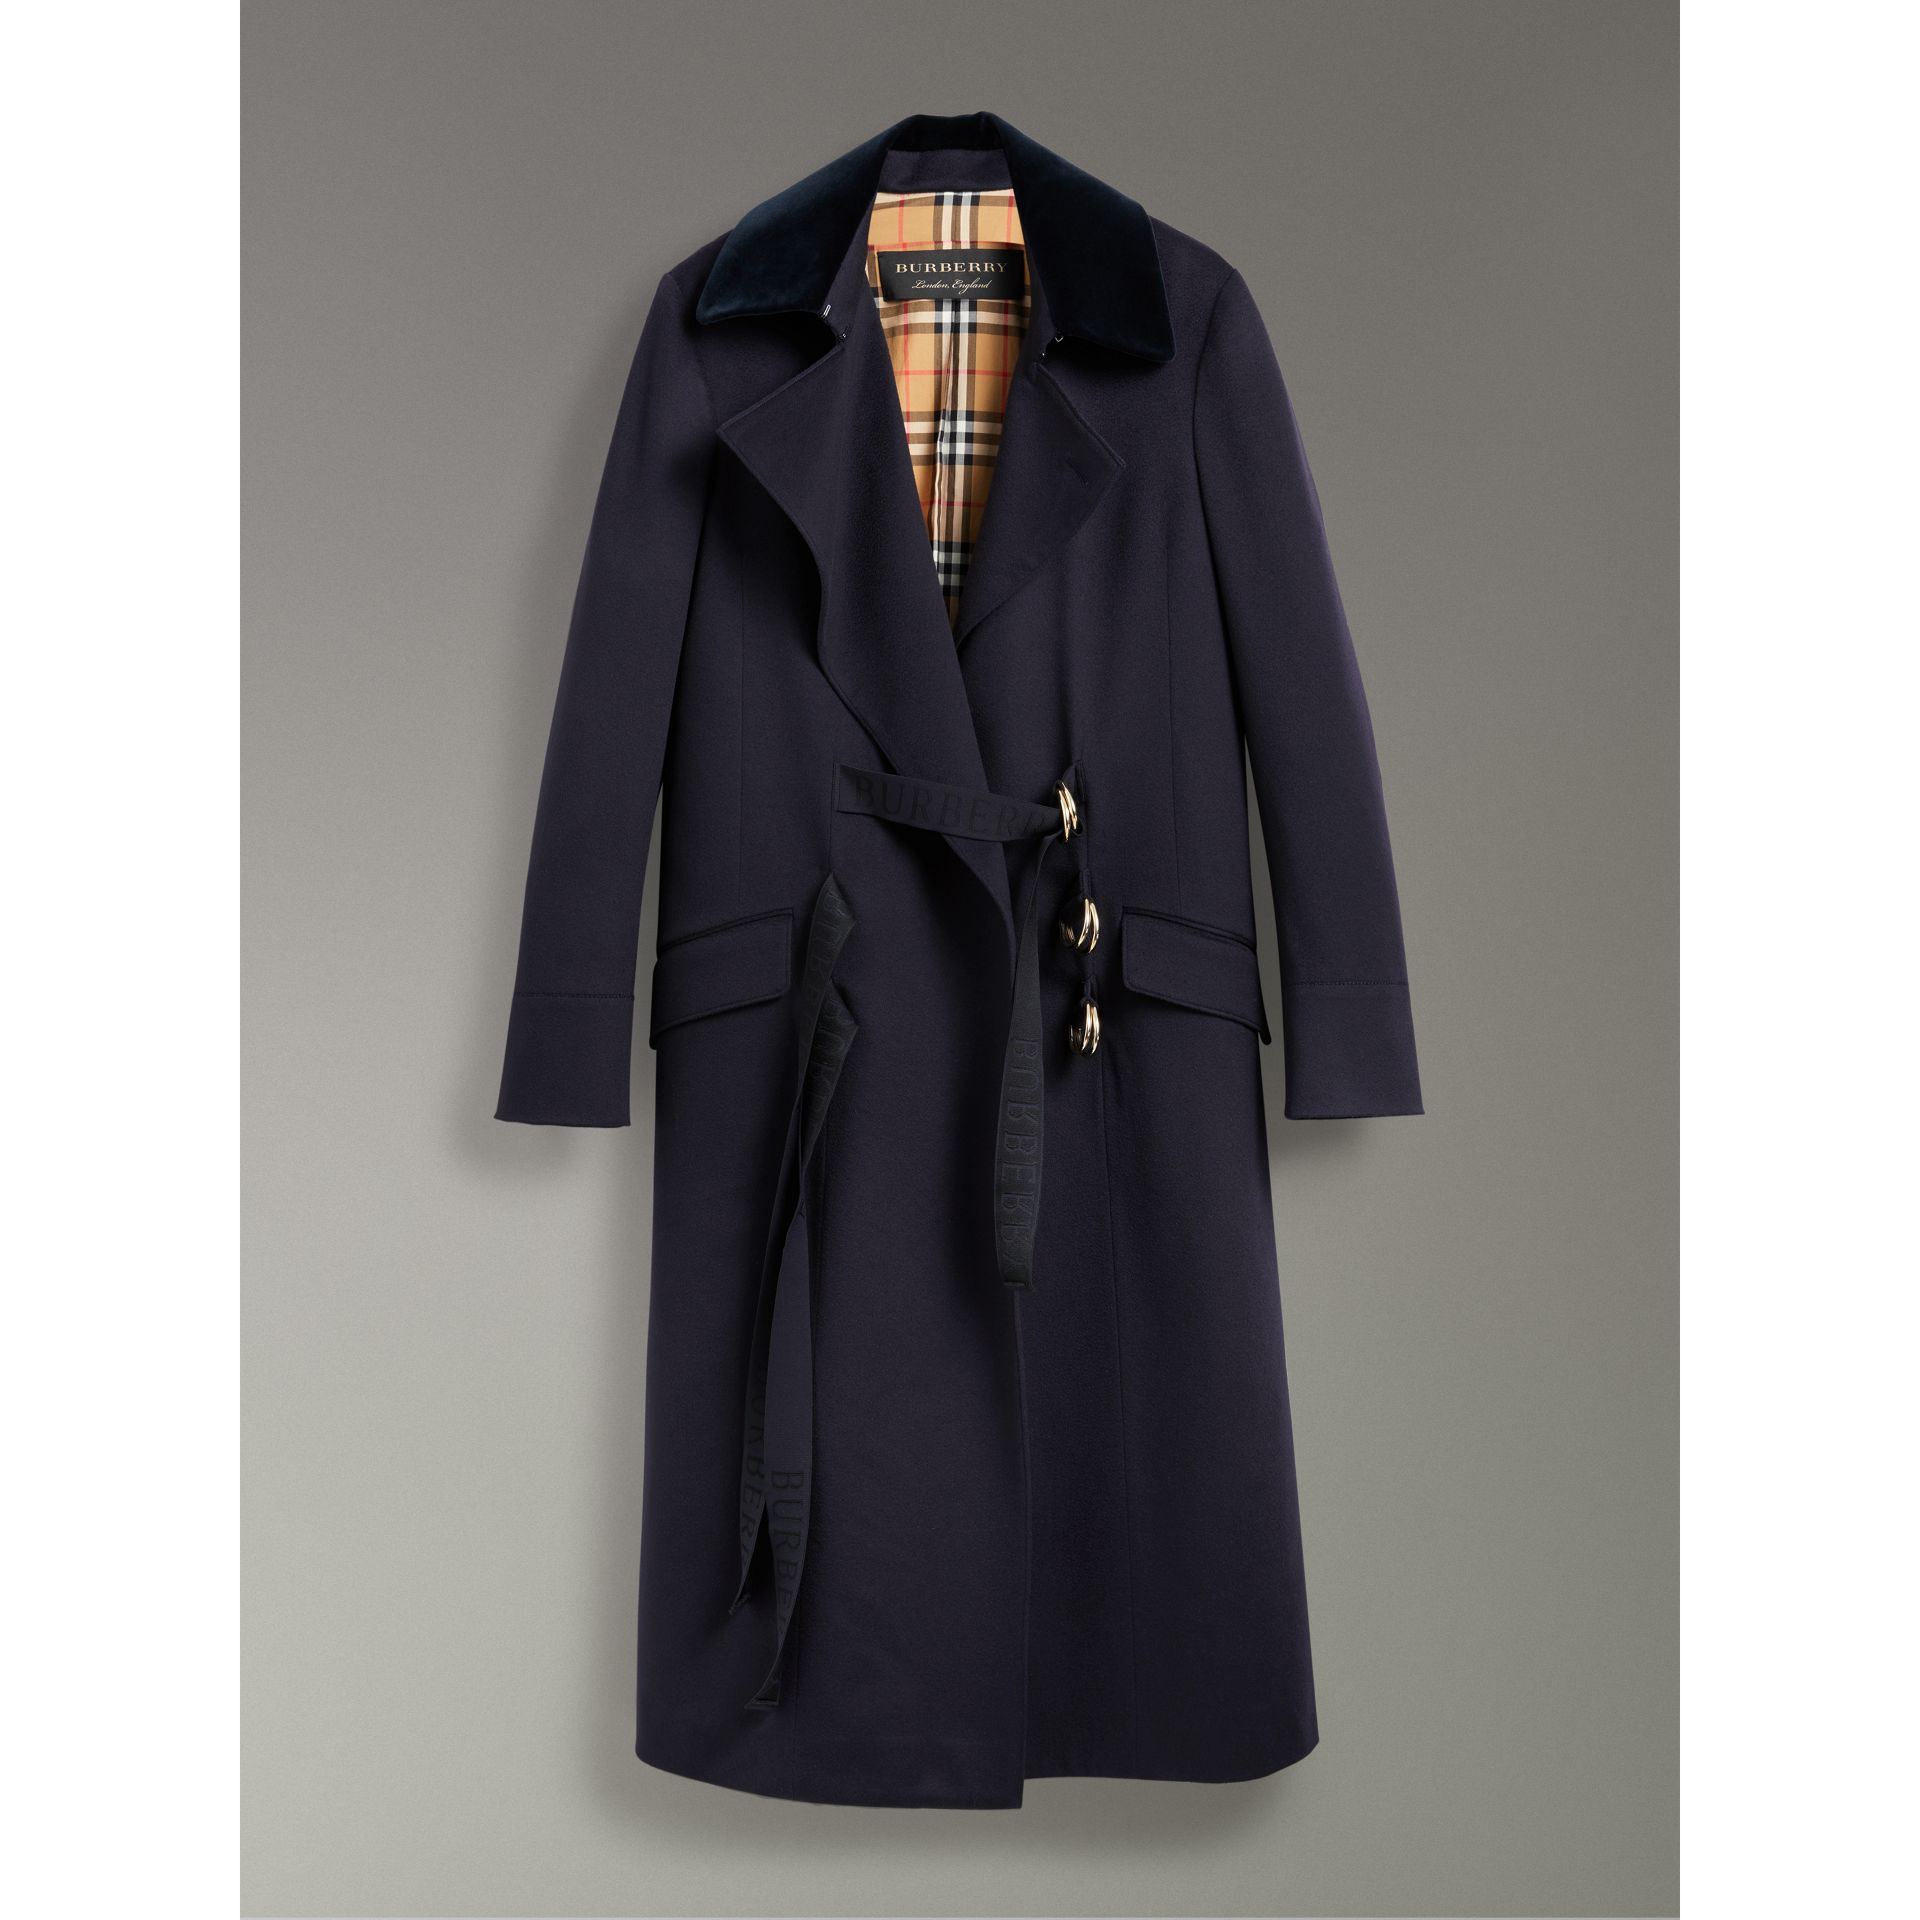 D-ring Detail Doeskin Wool Coat in Dark Navy - Women | Burberry - gallery image 3